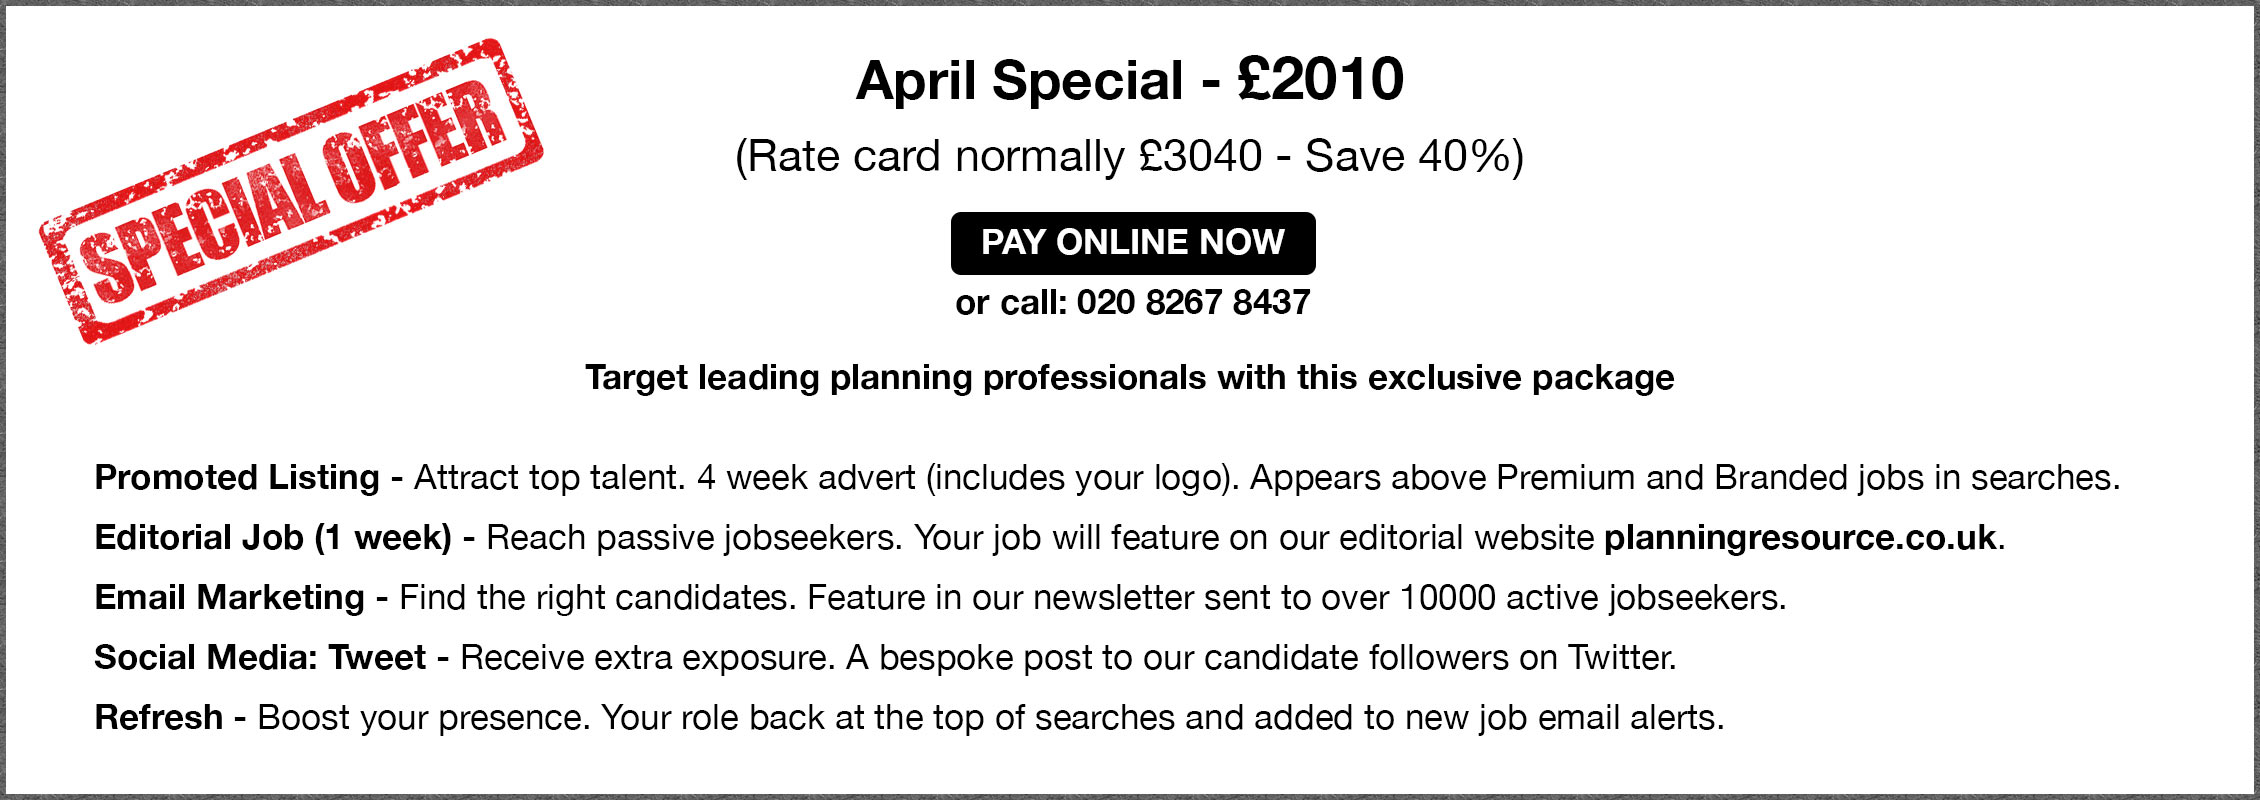 Special Offer. April Special - £2010.